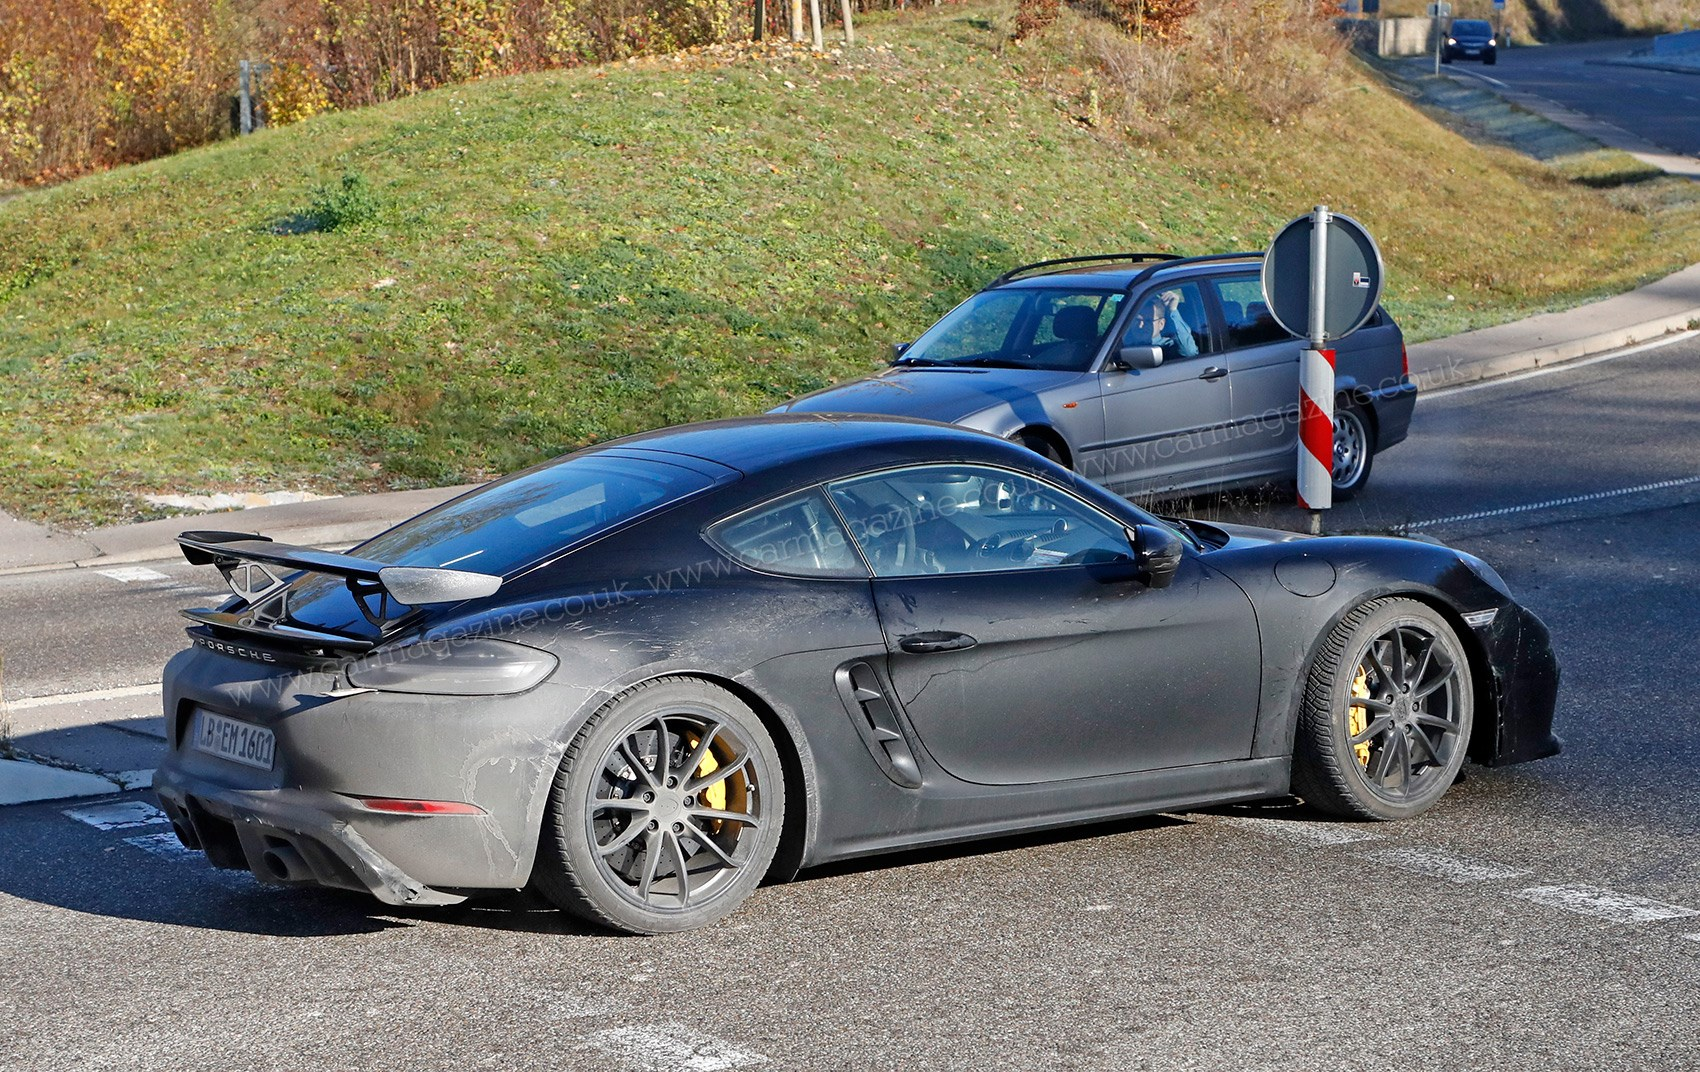 New Porsche Cayman Gt4 Fresh Pictures Of Testing Mule